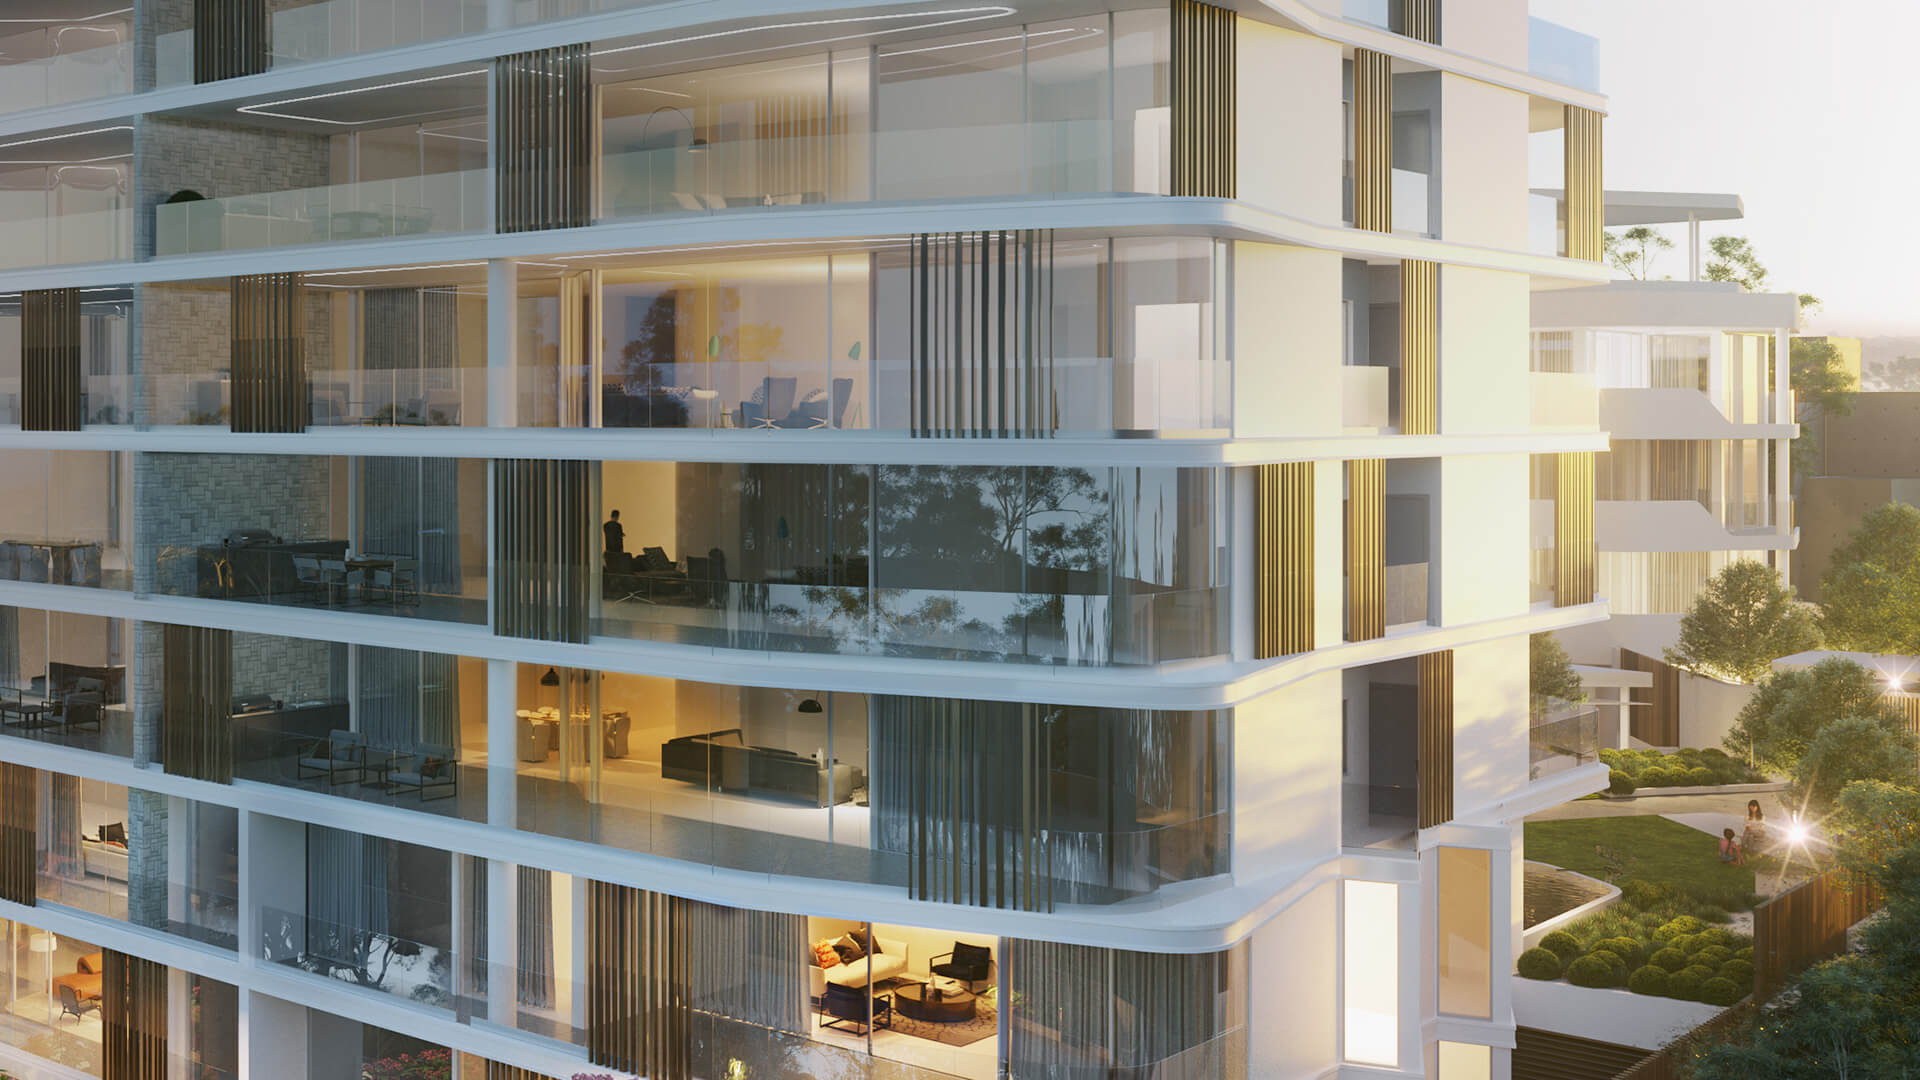 Building exterior with views inside apartments